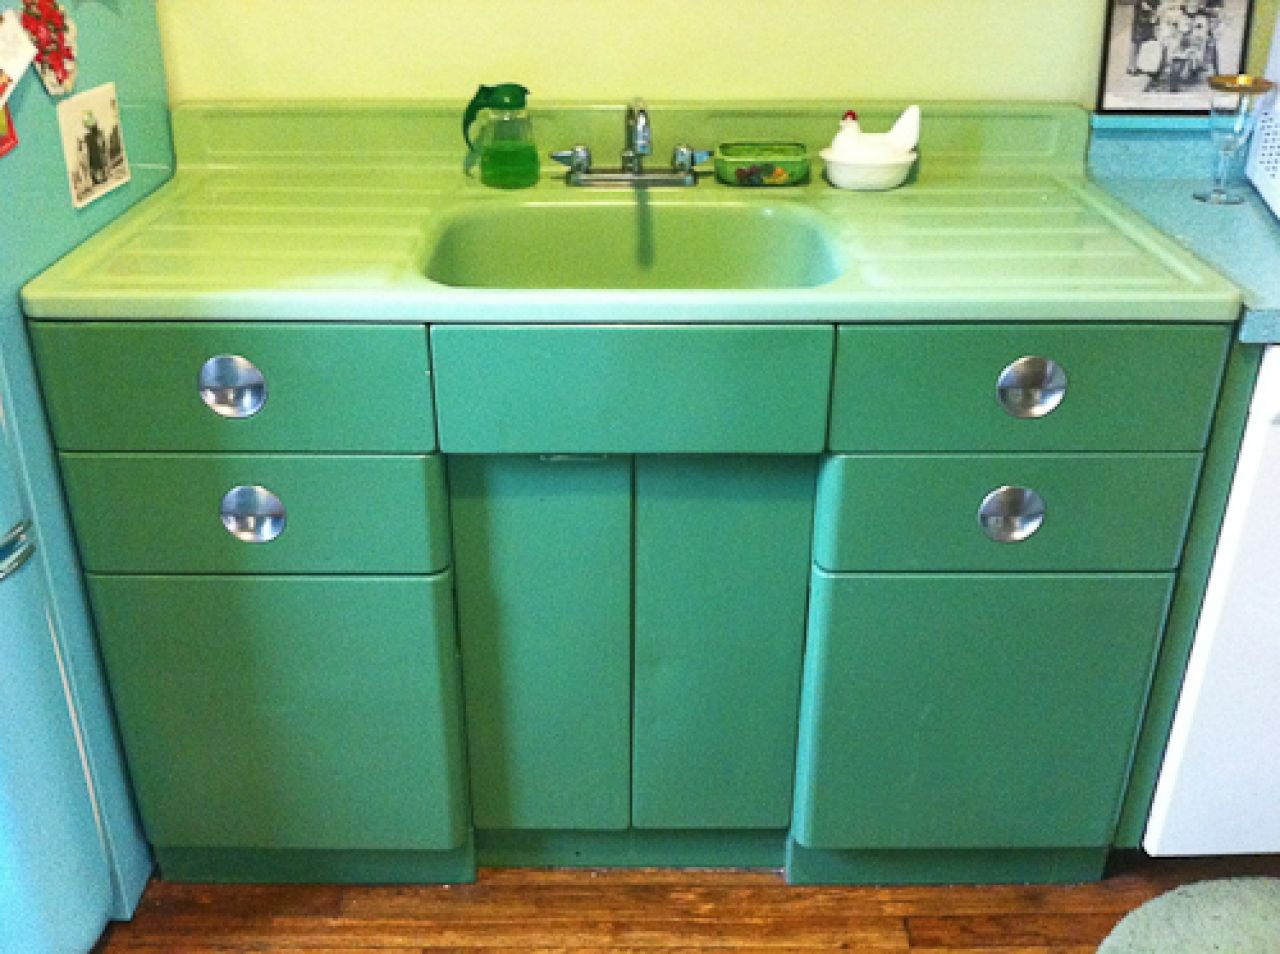 Medium image of vintage metal kitchen cabinet   vintage jadeite porcelain drainboard sink and metal sink cabinet